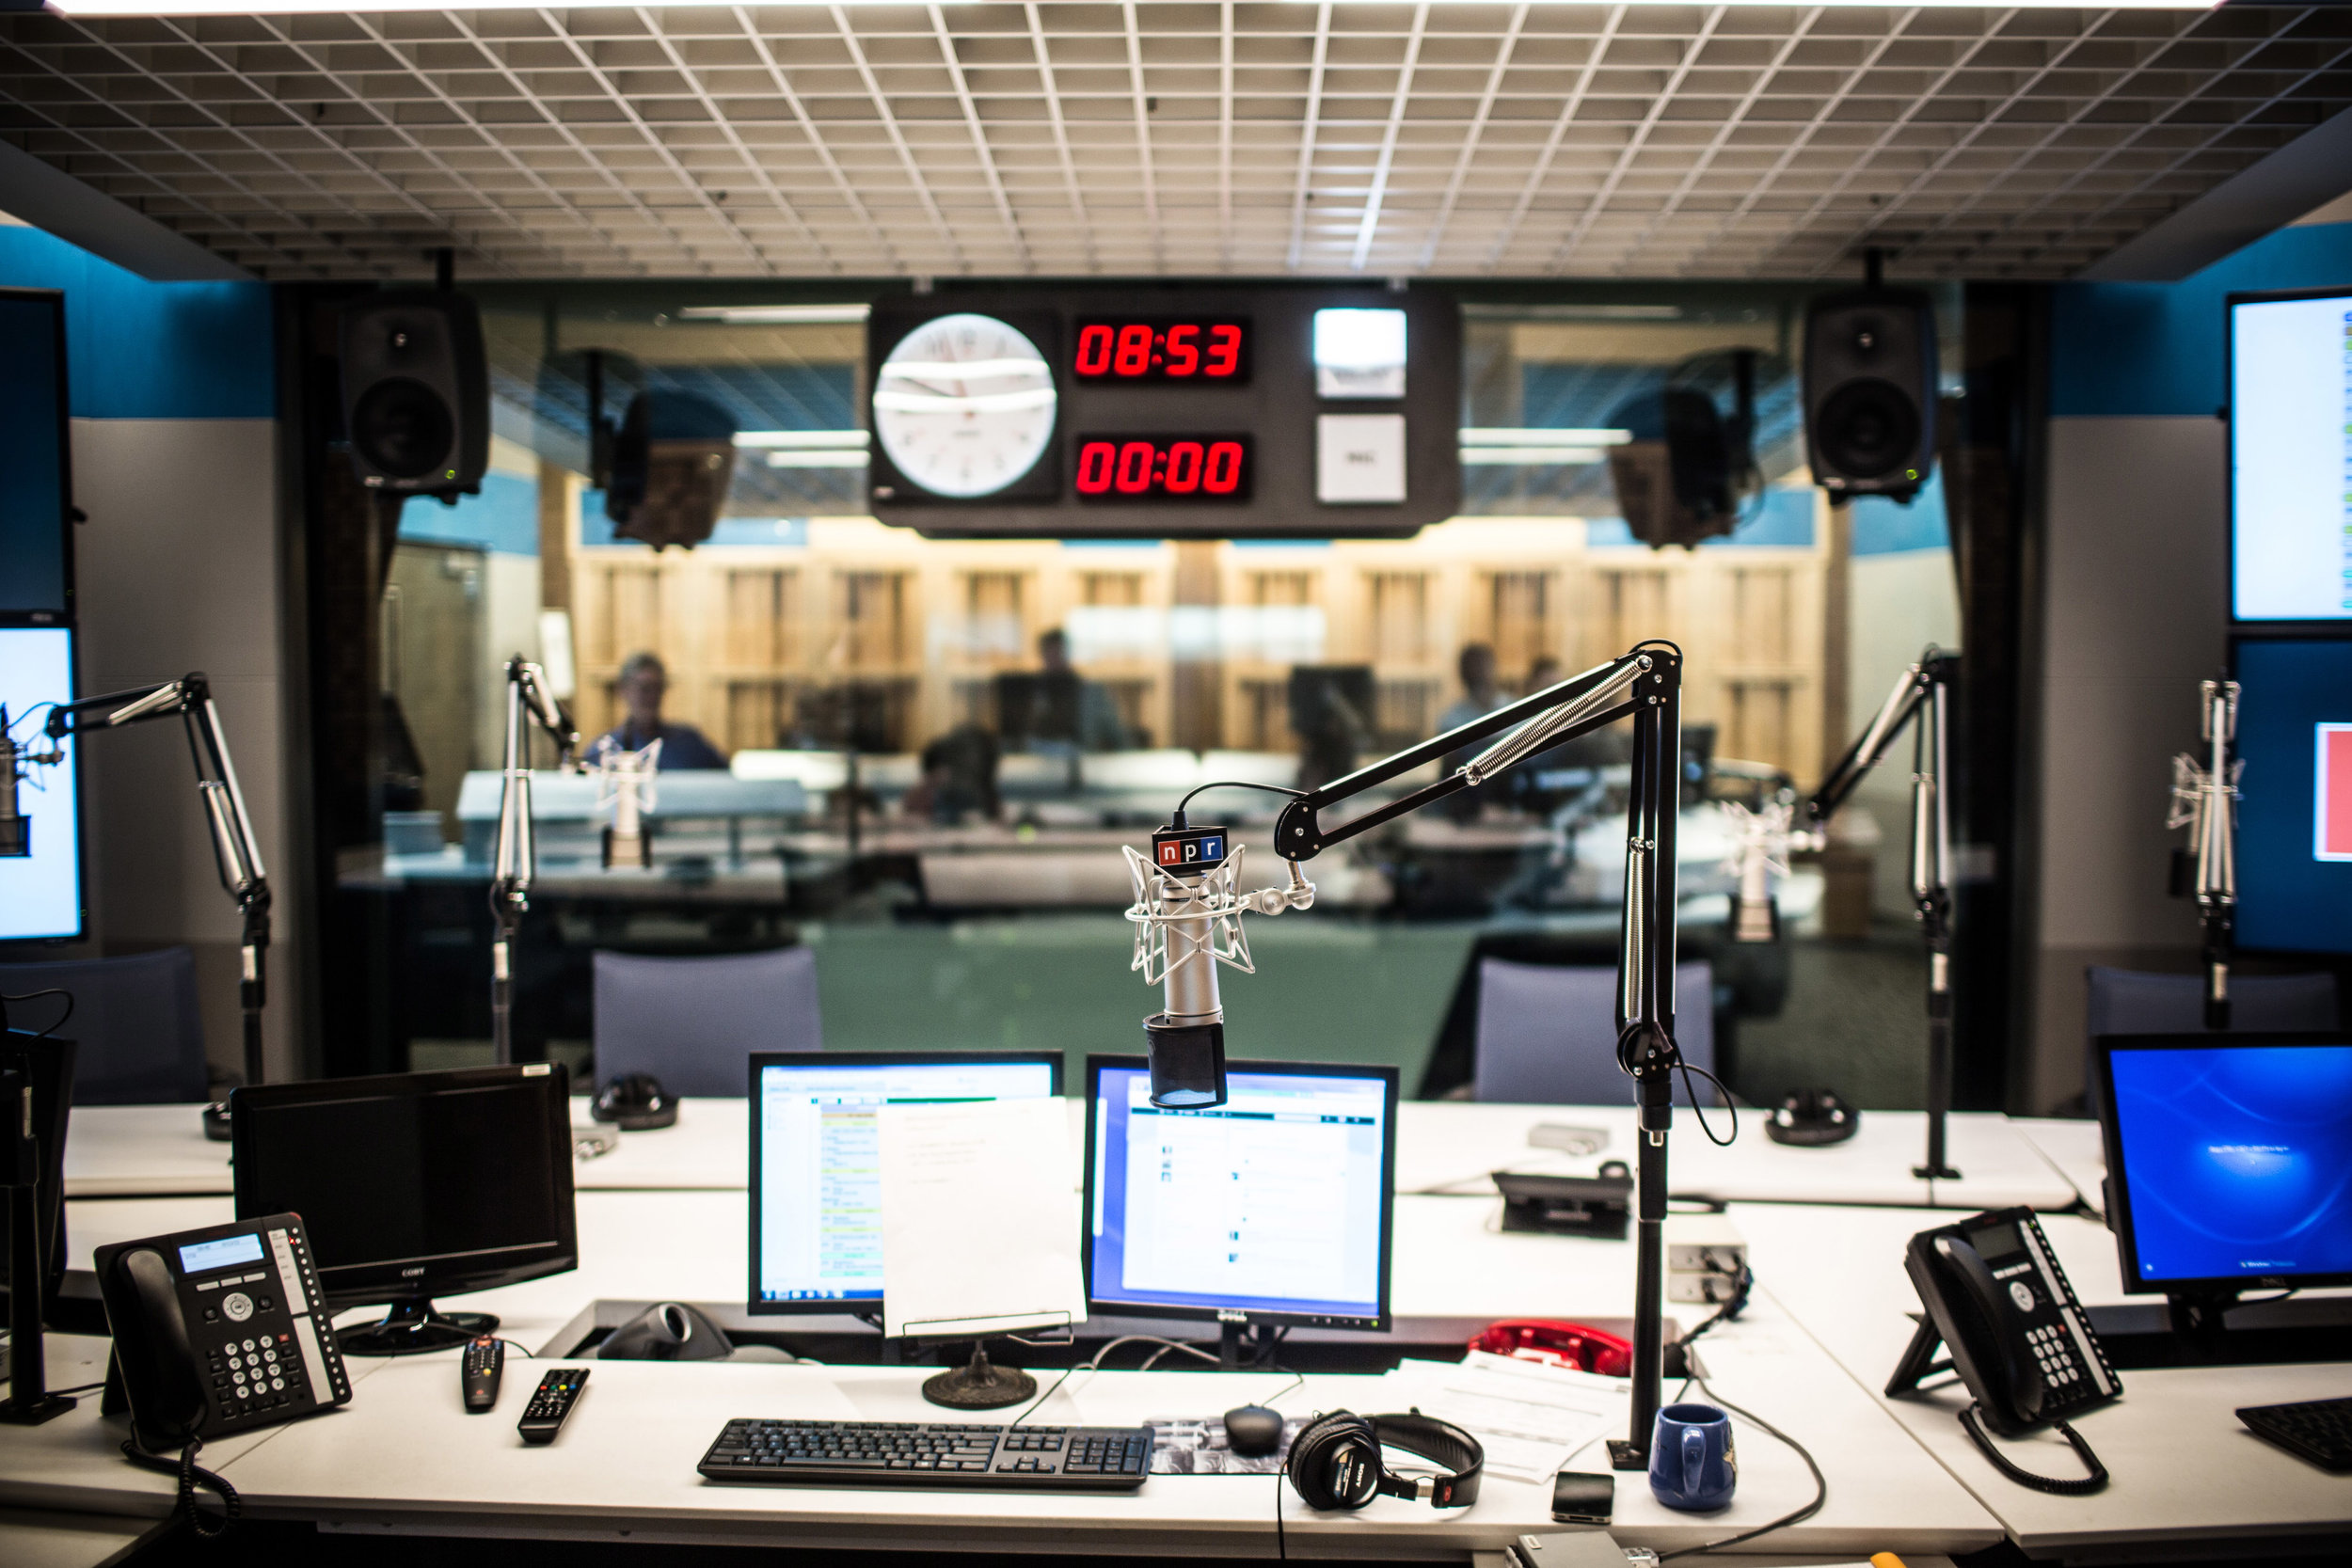 NPR studio: The view from the host's chair.